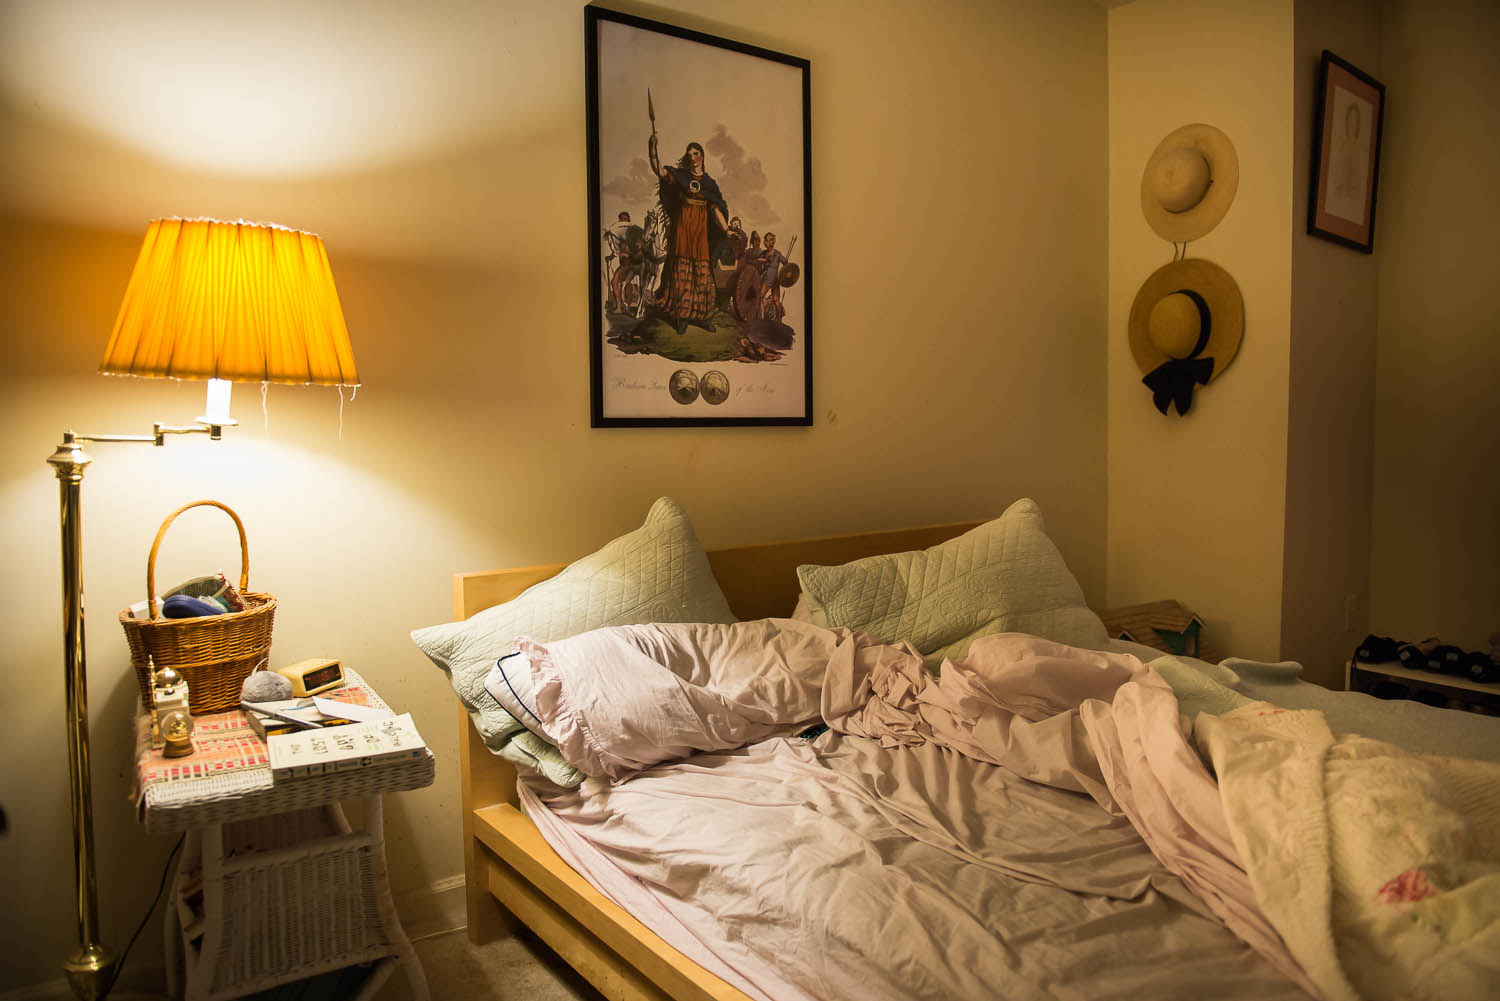 The bed sits unmade in the early morning hours in Joani Peacock's bedroom at her Alexandria, Va., home, Saturday, Oct. 4, 2014. Peacock says that she strives to live a balanced life with bipolar disorder and surrounds herself with objects she has collected, including an image of Celtic war queen Boudicea that hangs over her bed.